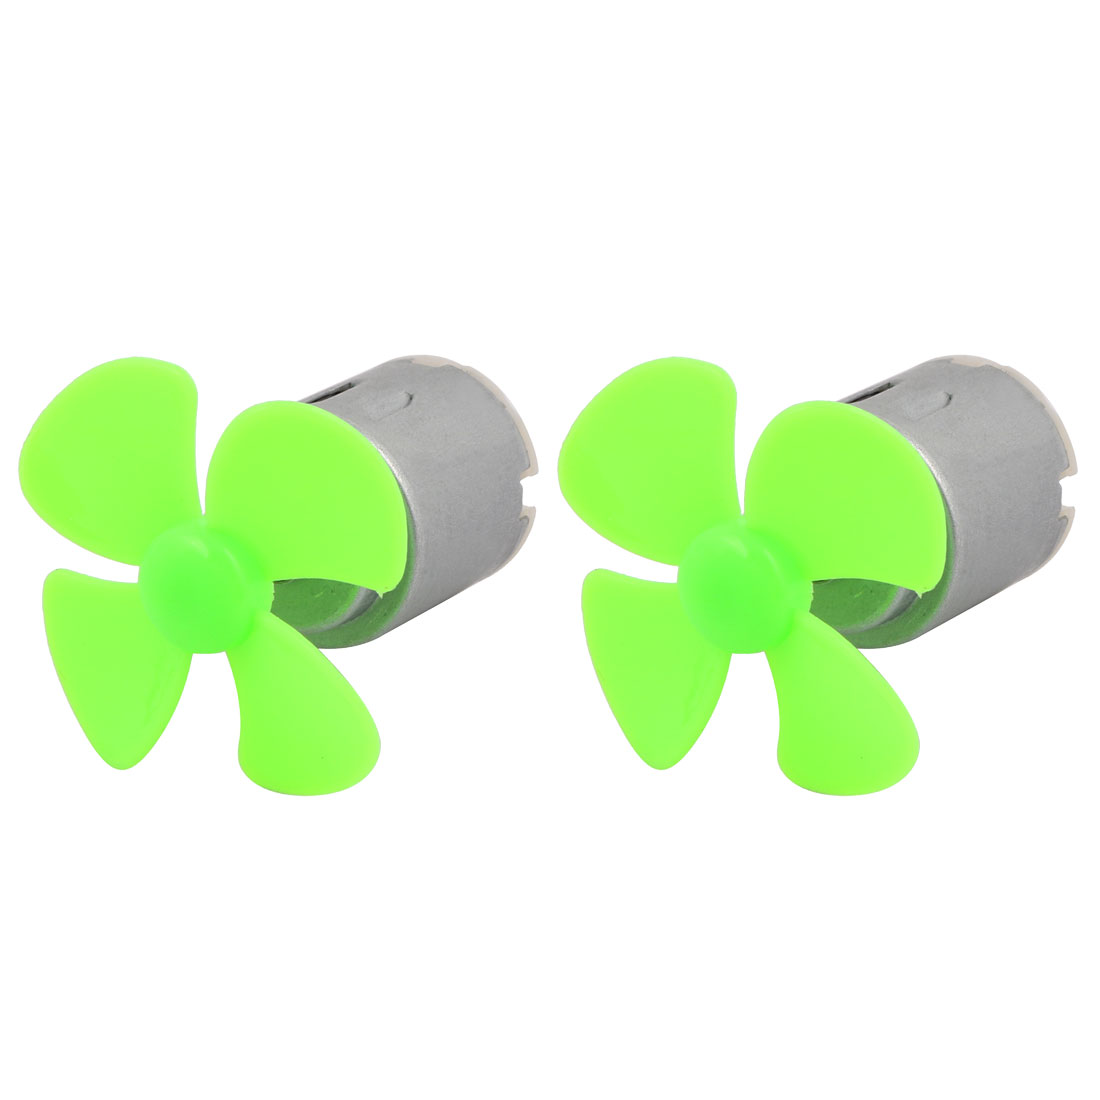 2pcs DC 3V 0.13A 9000RPM Strong Force Motor 4 Blades 40mm Green Propeller for RC Aircraft